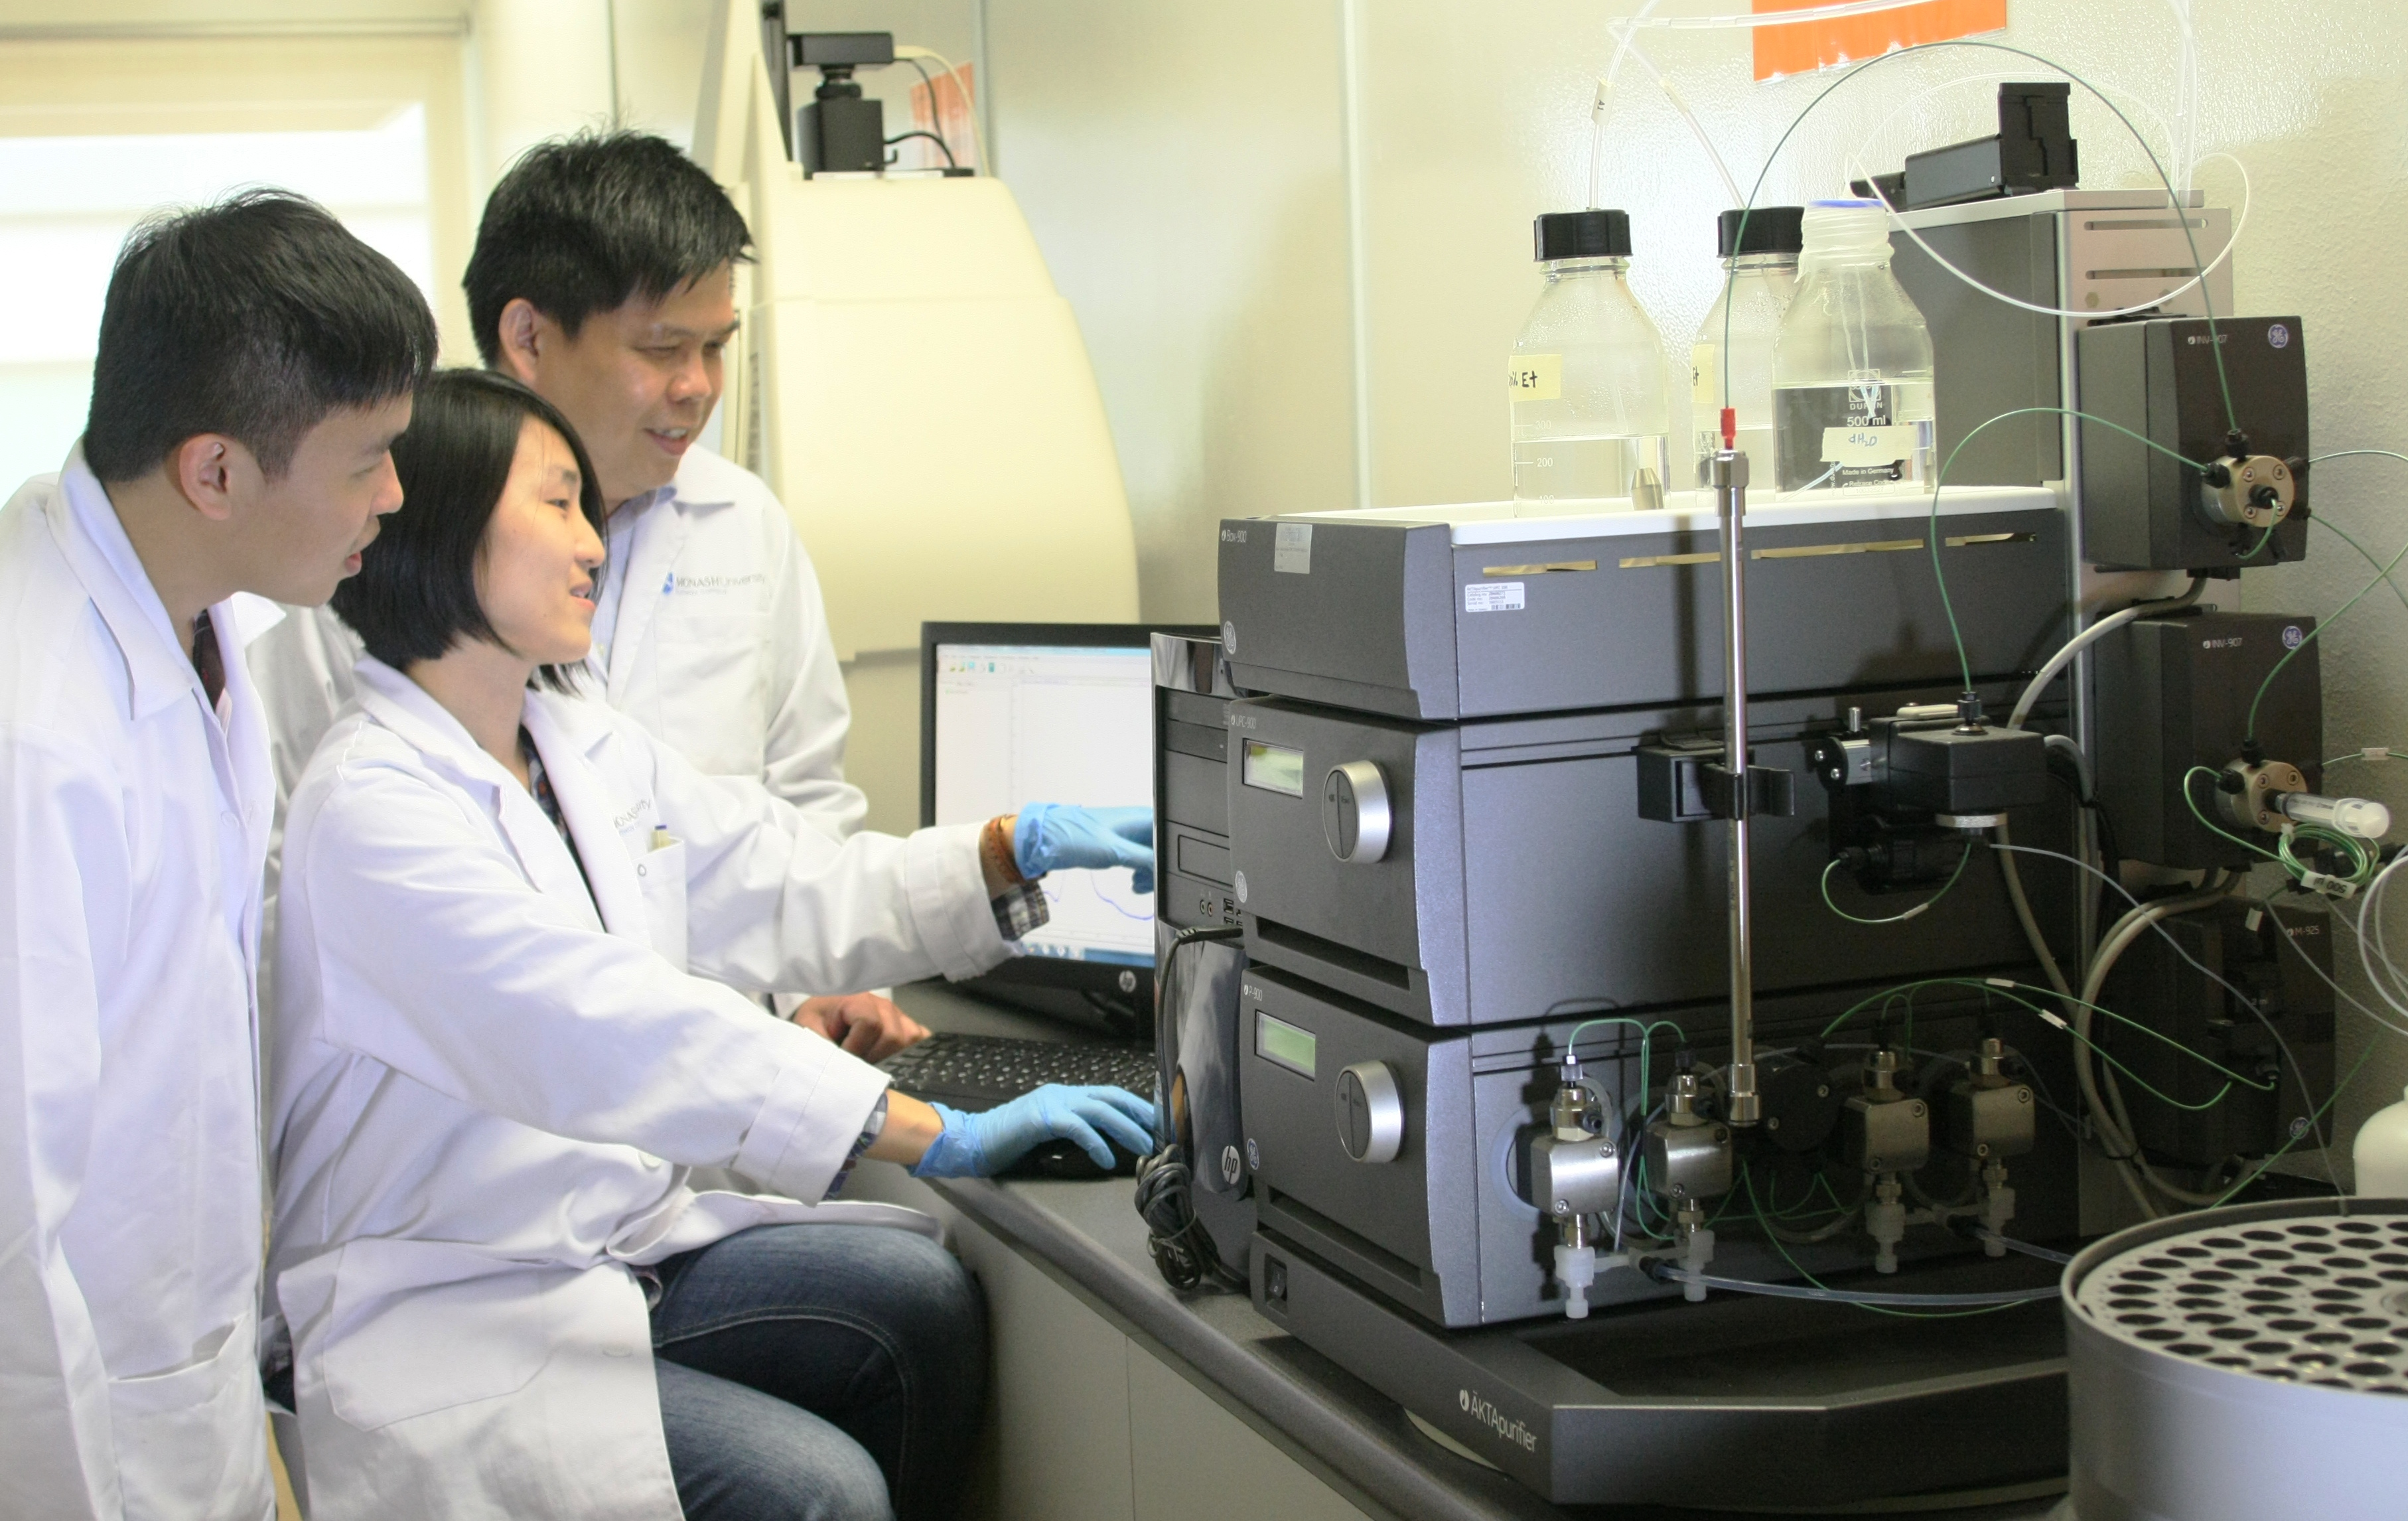 Prof Tey with his team of researchers analysing the results from the chromatographic purification process – which purifies virus-like particles.